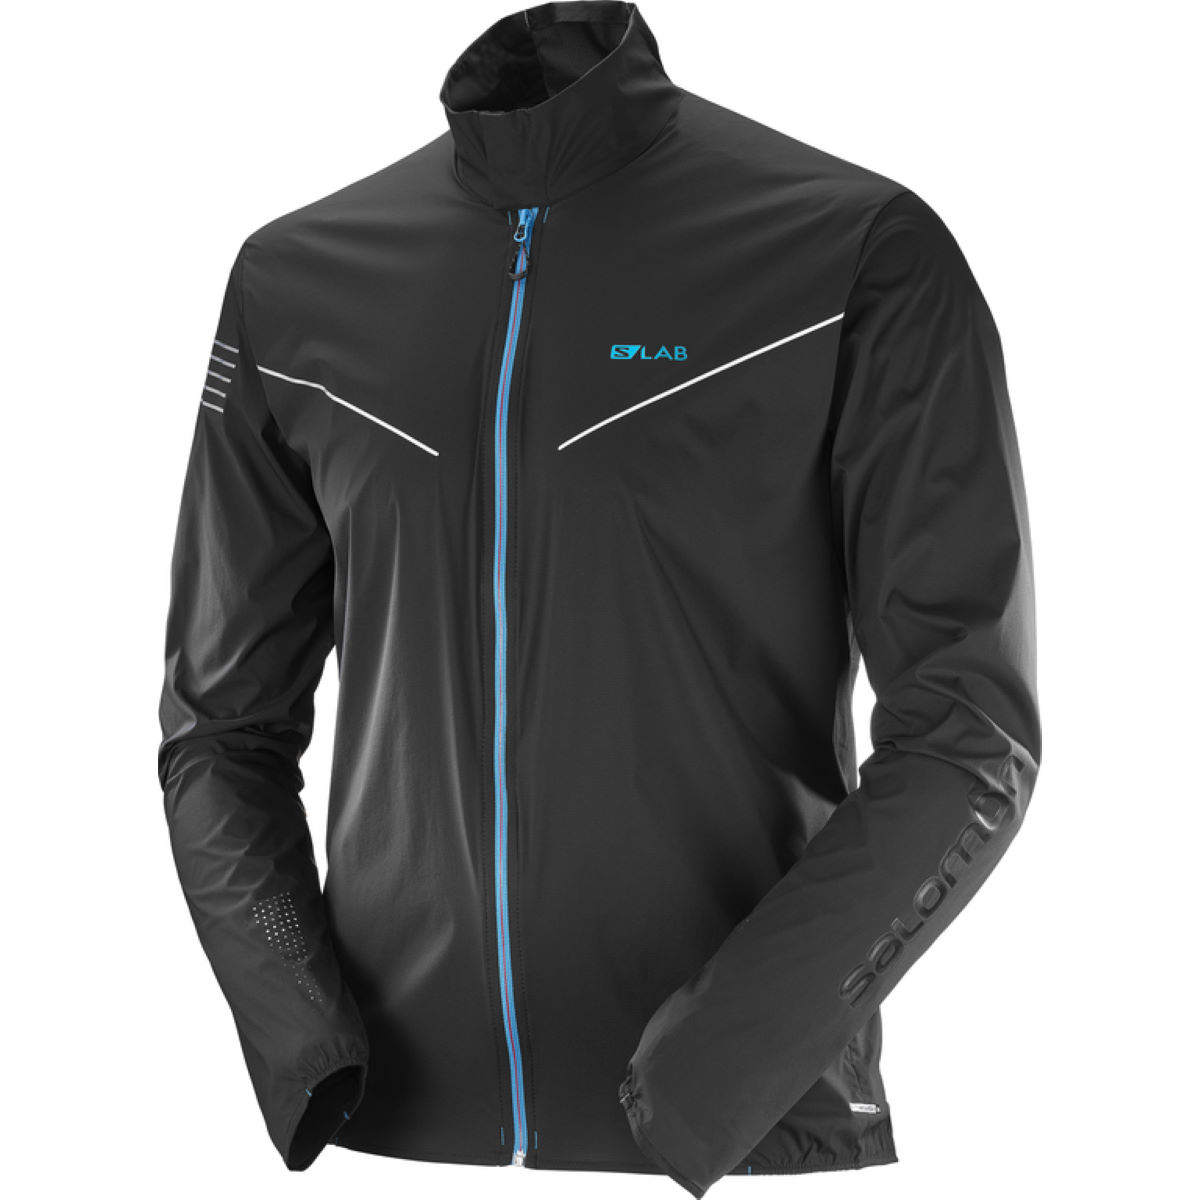 Veste Salomon S-Lab Light - M Noir Vestes de running coupe-vent